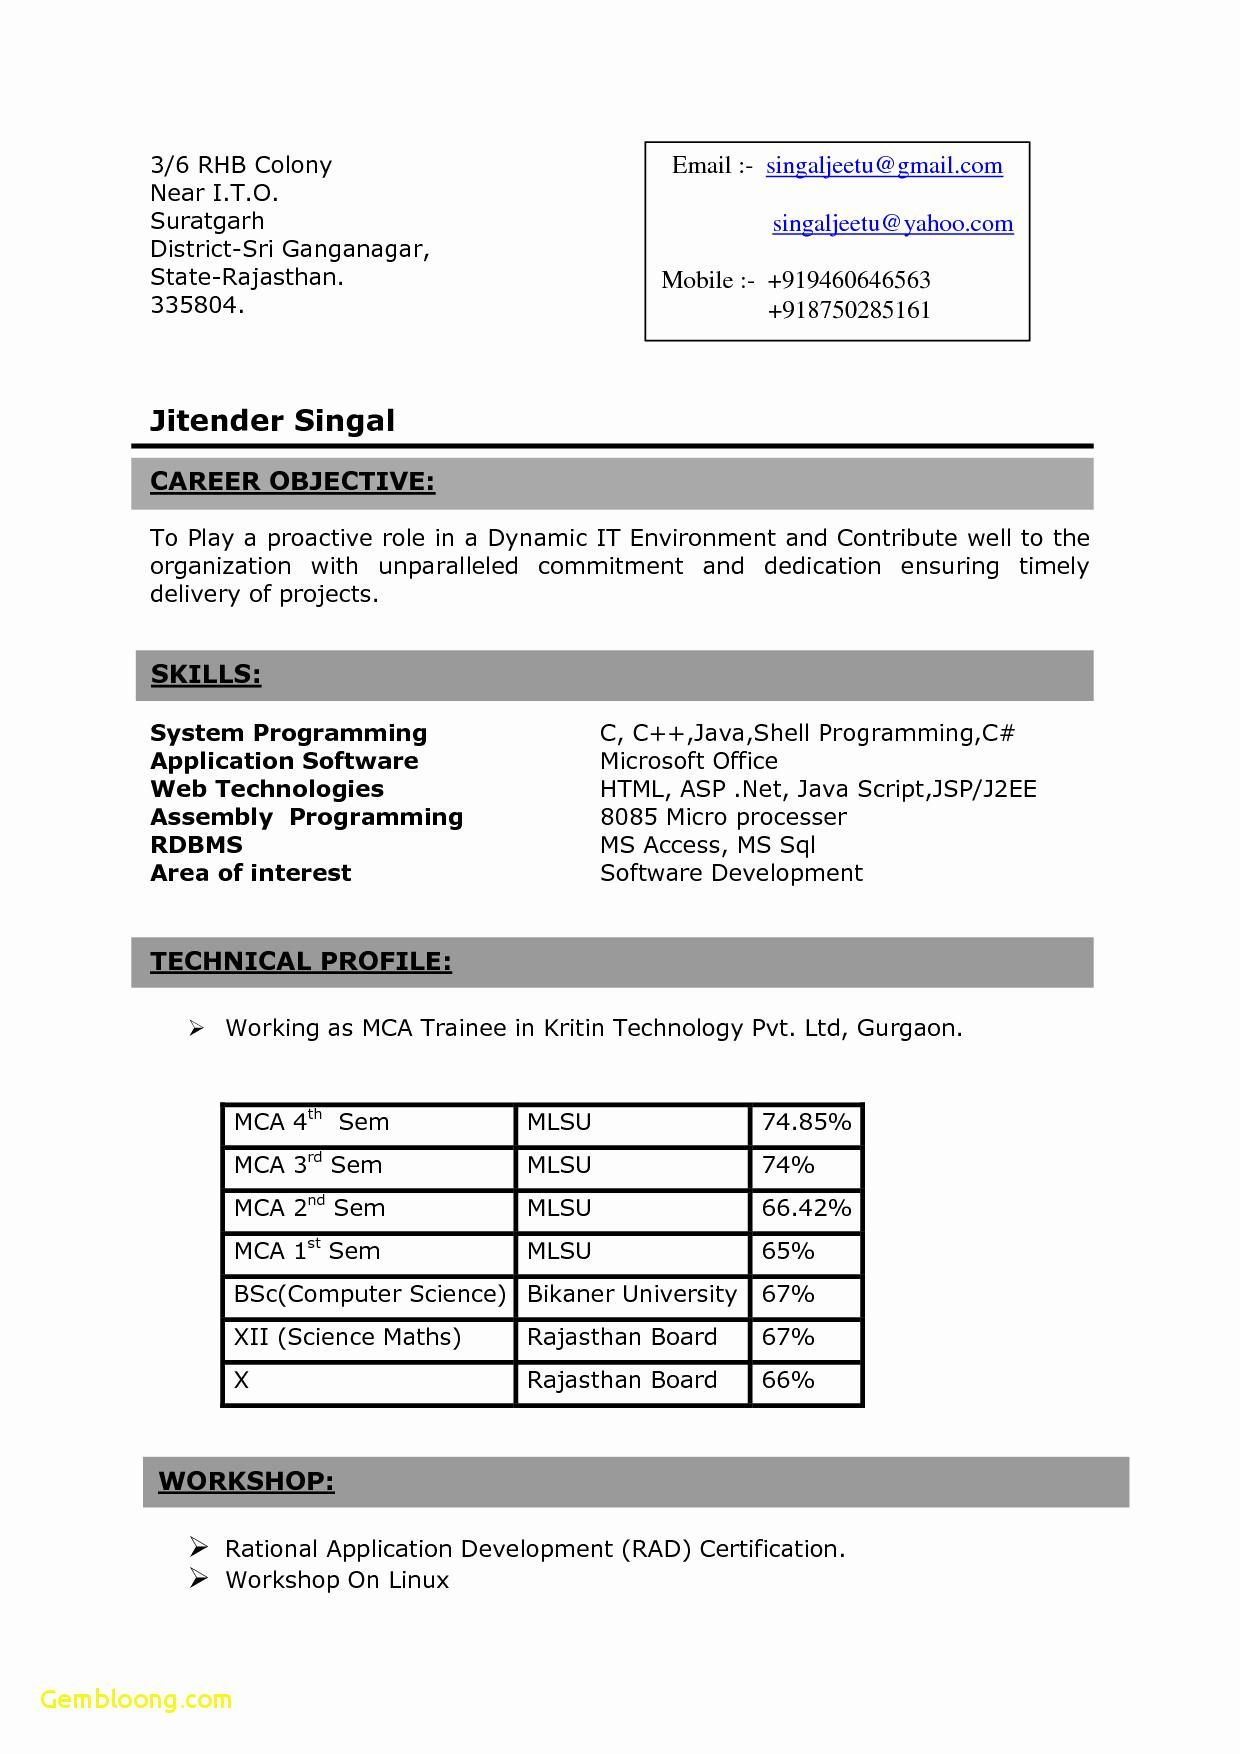 Resume format for 3rd year engineering students resume